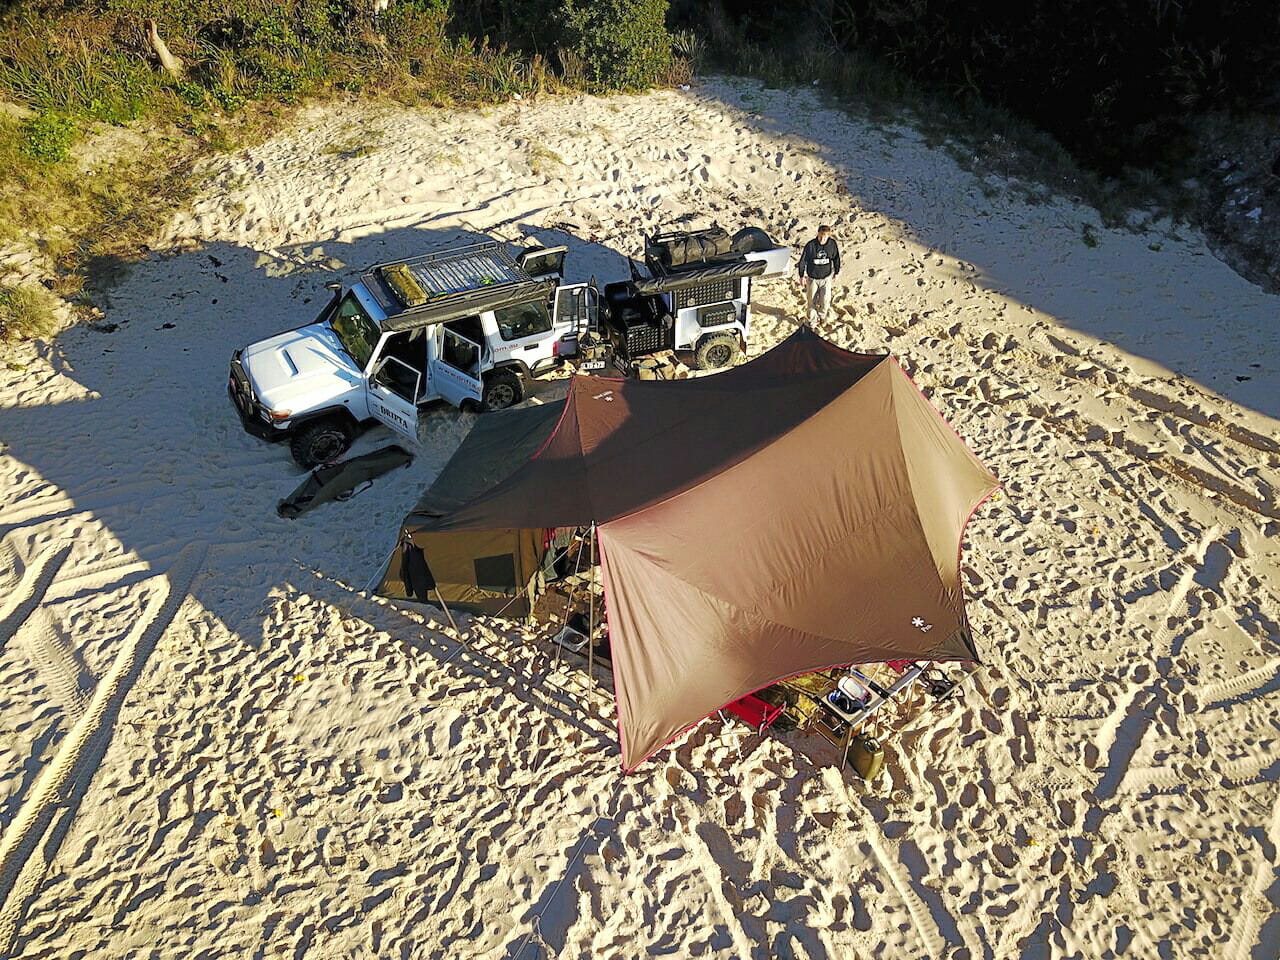 Drifta camping set up on the beach